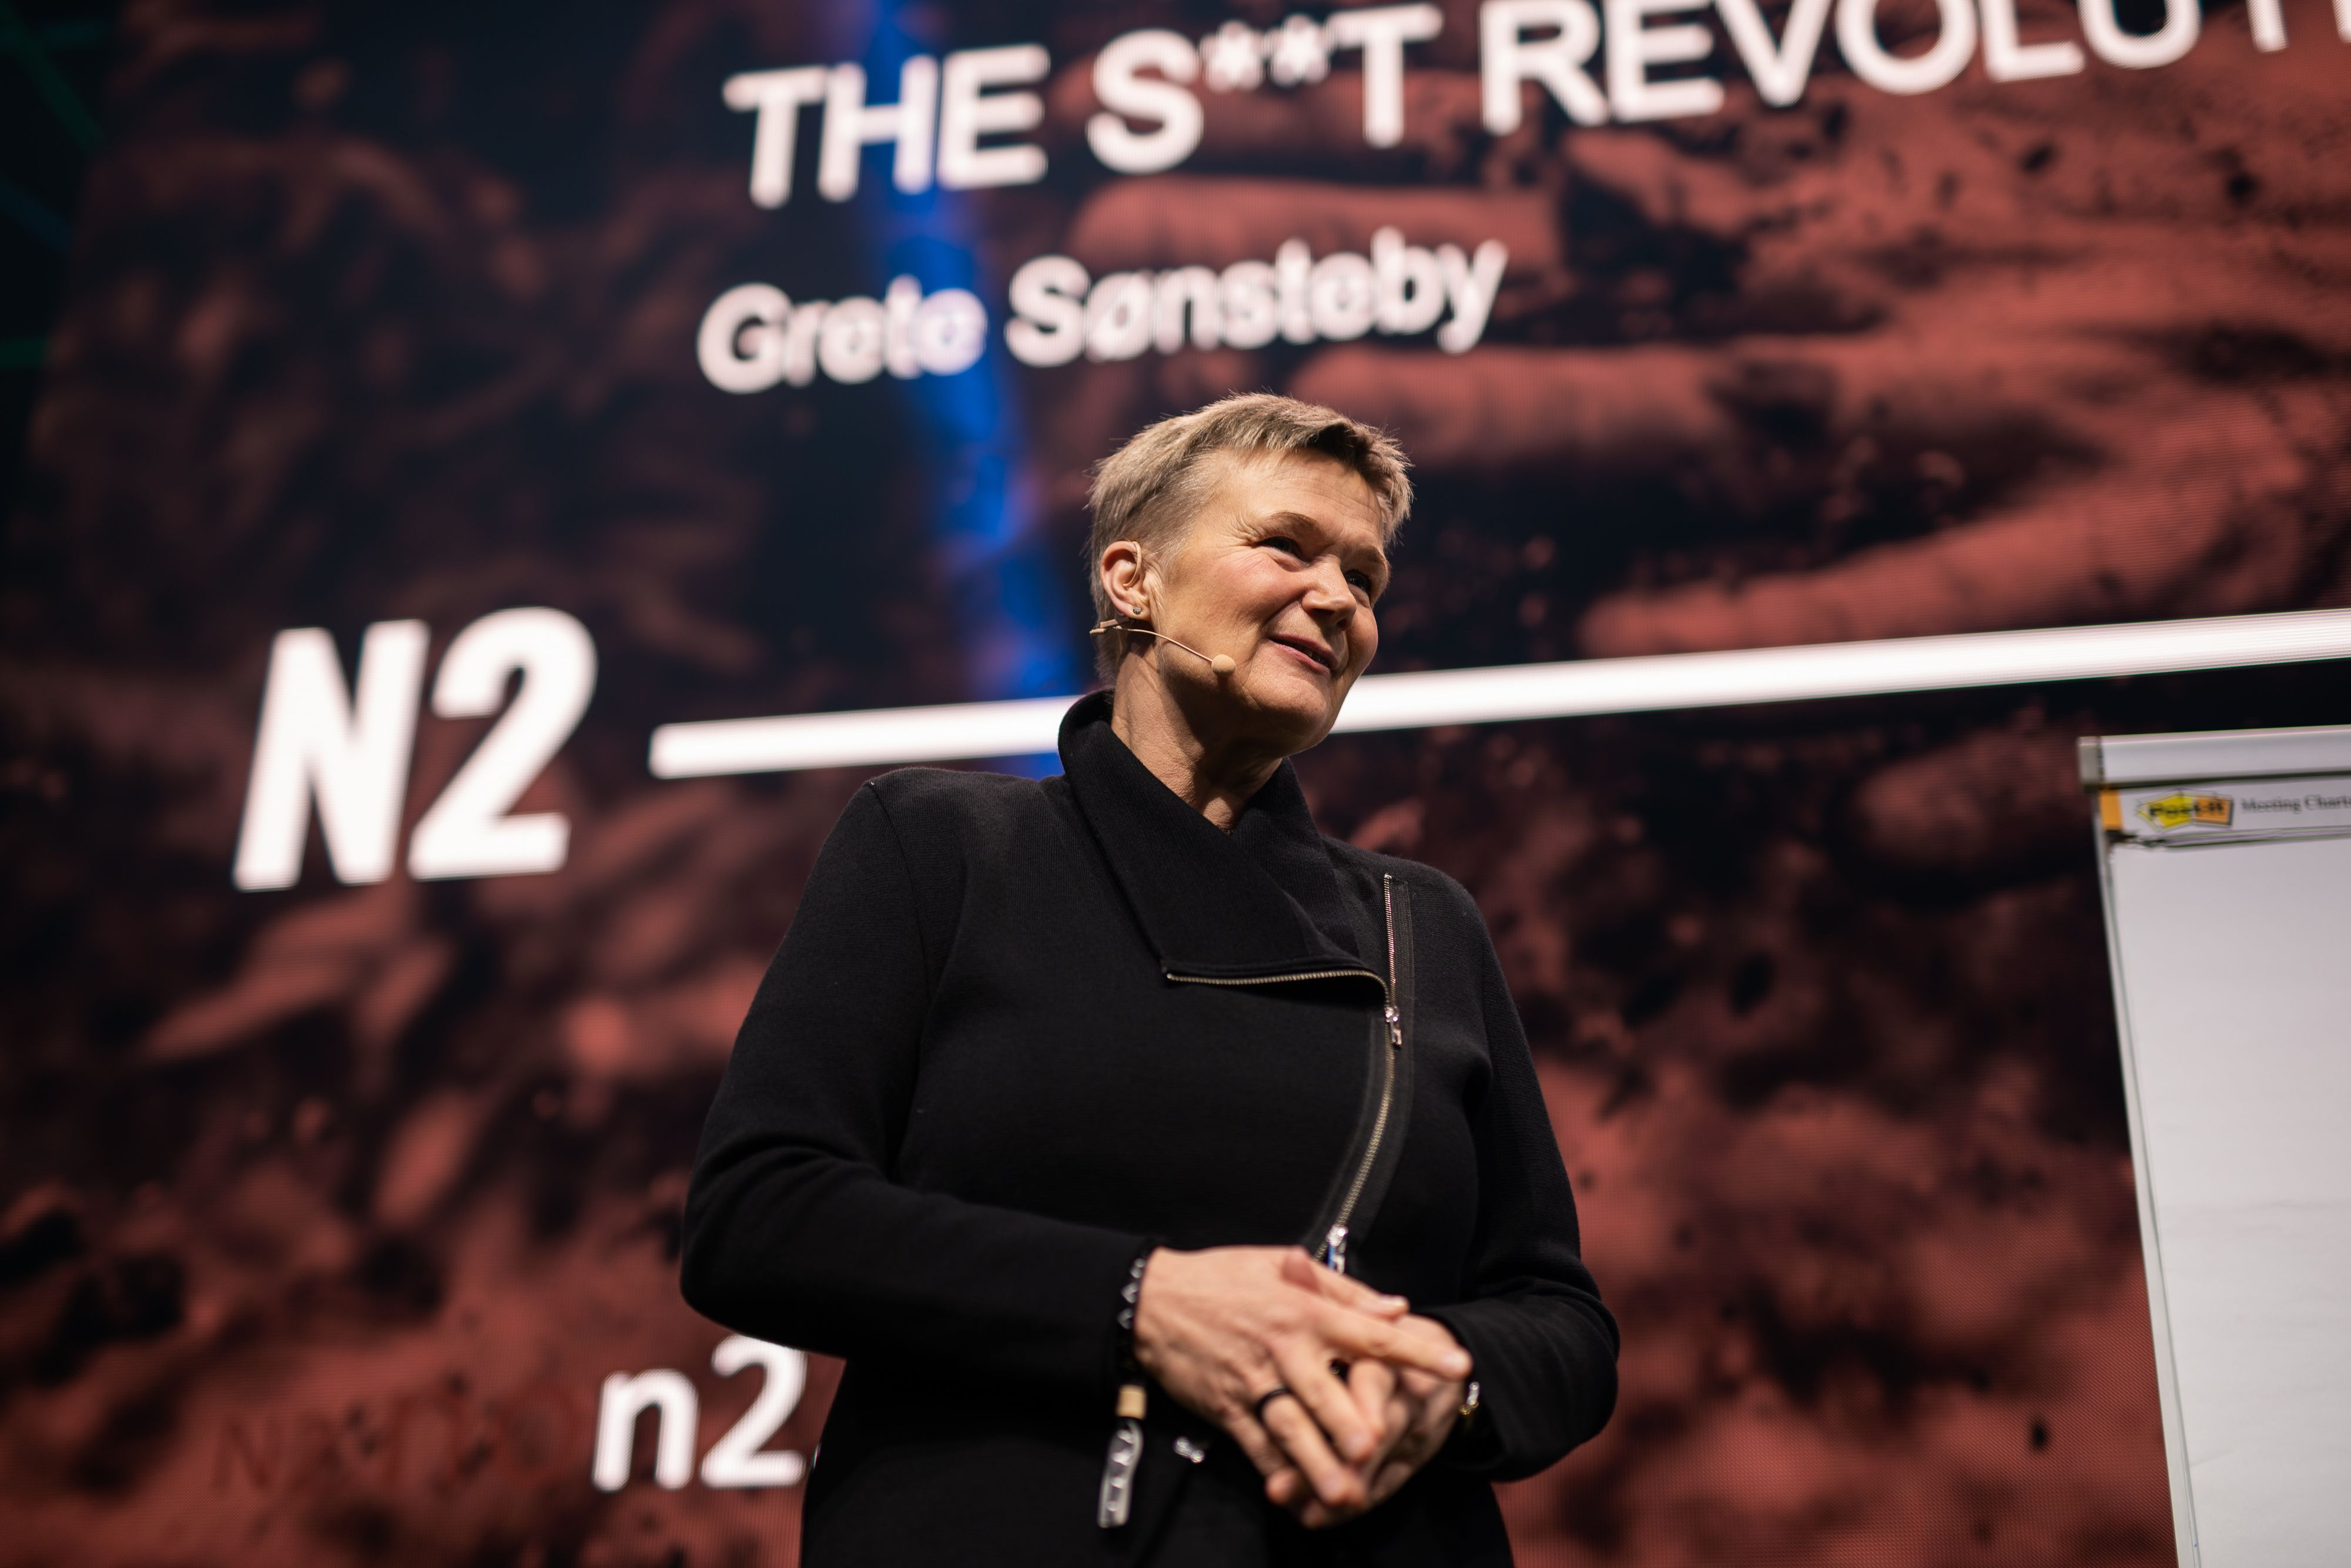 Photo of Grete Sønsteby